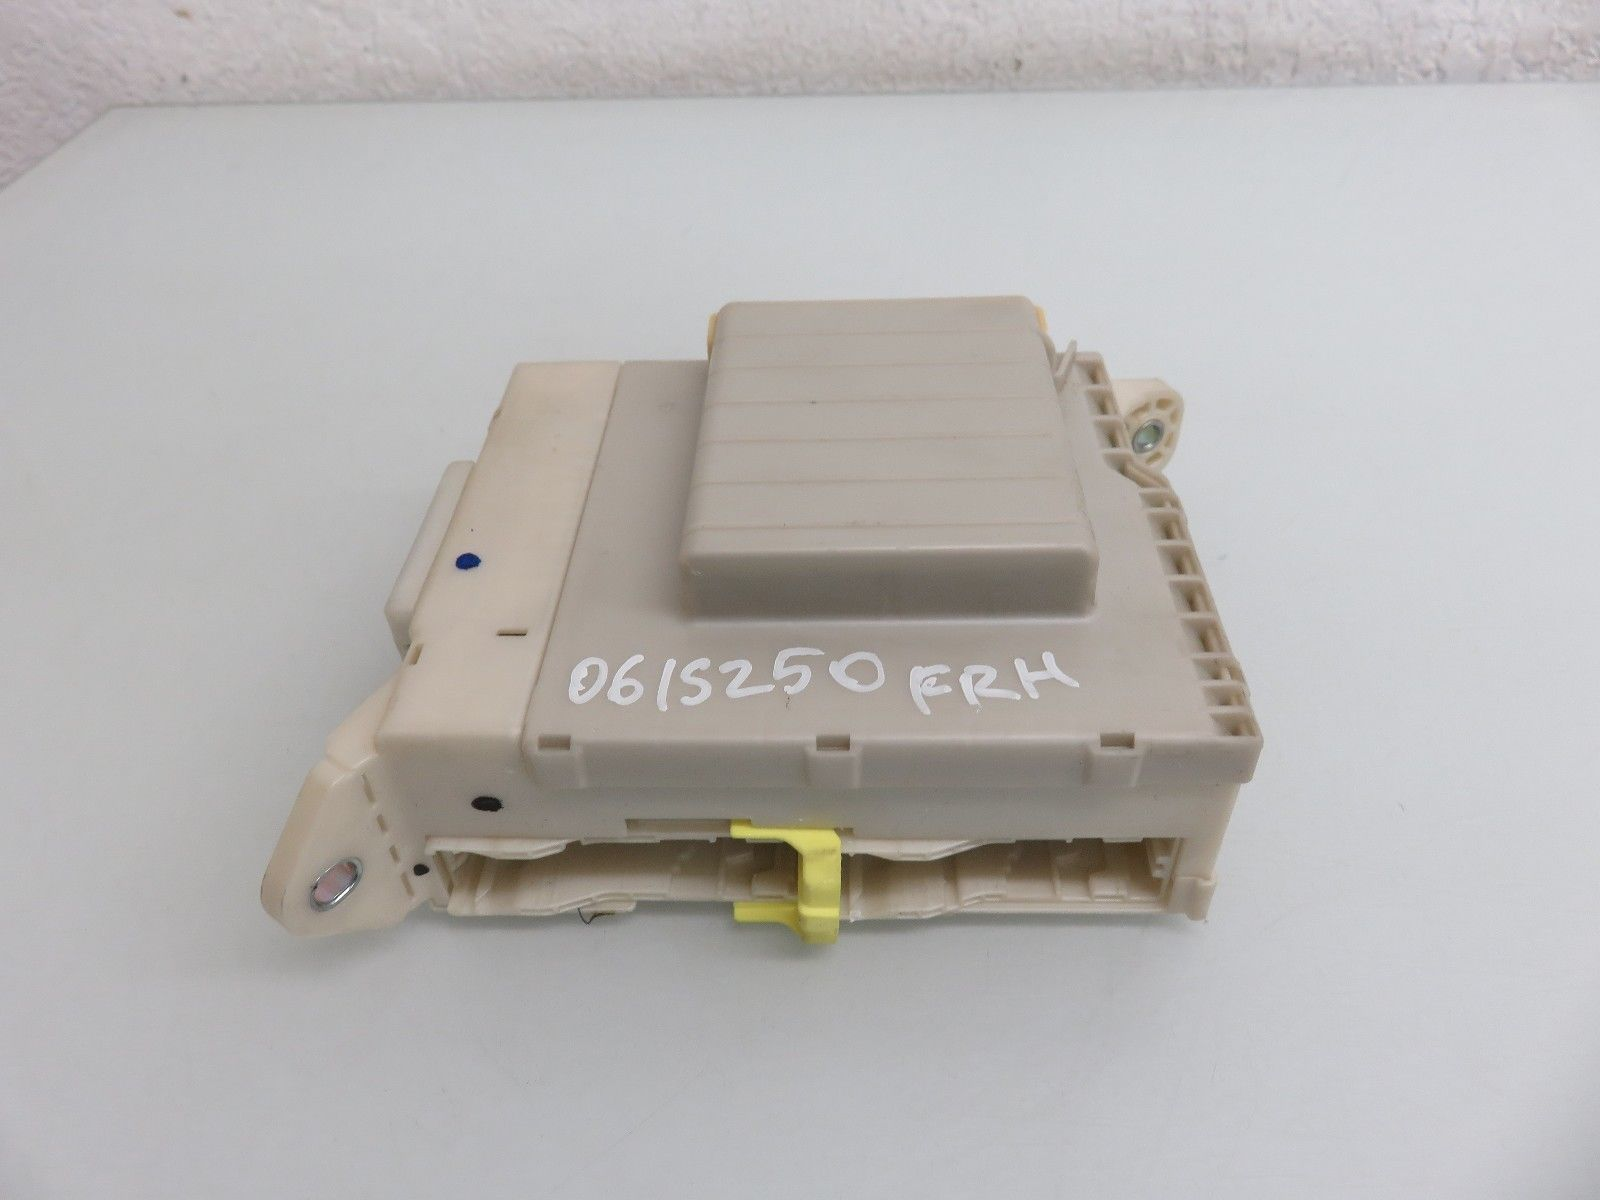 Lexus Fuse Relay Box Trusted Schematics Diagram 2007 Rx 350 Interior 06 08 Is250 Is350 Oem 82672 53040 For